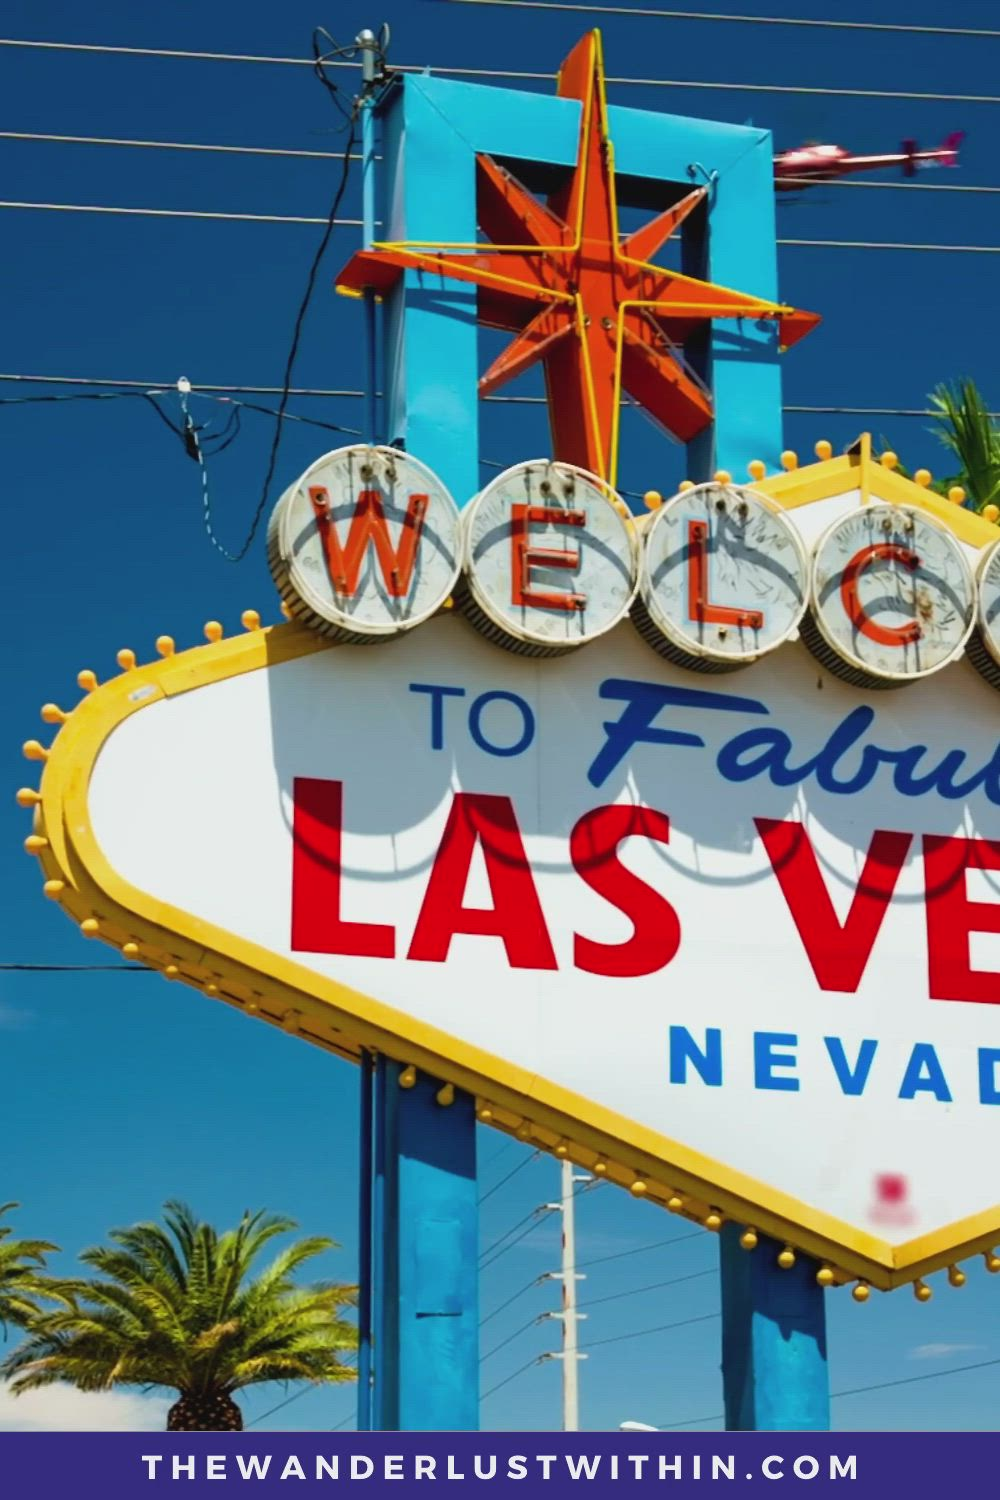 75 Best Las Vegas Quotes And Captions For Instagram 2021 The Wanderlust Within Video Video In 2021 Vegas Quotes Las Vegas Quotes Instagram Captions